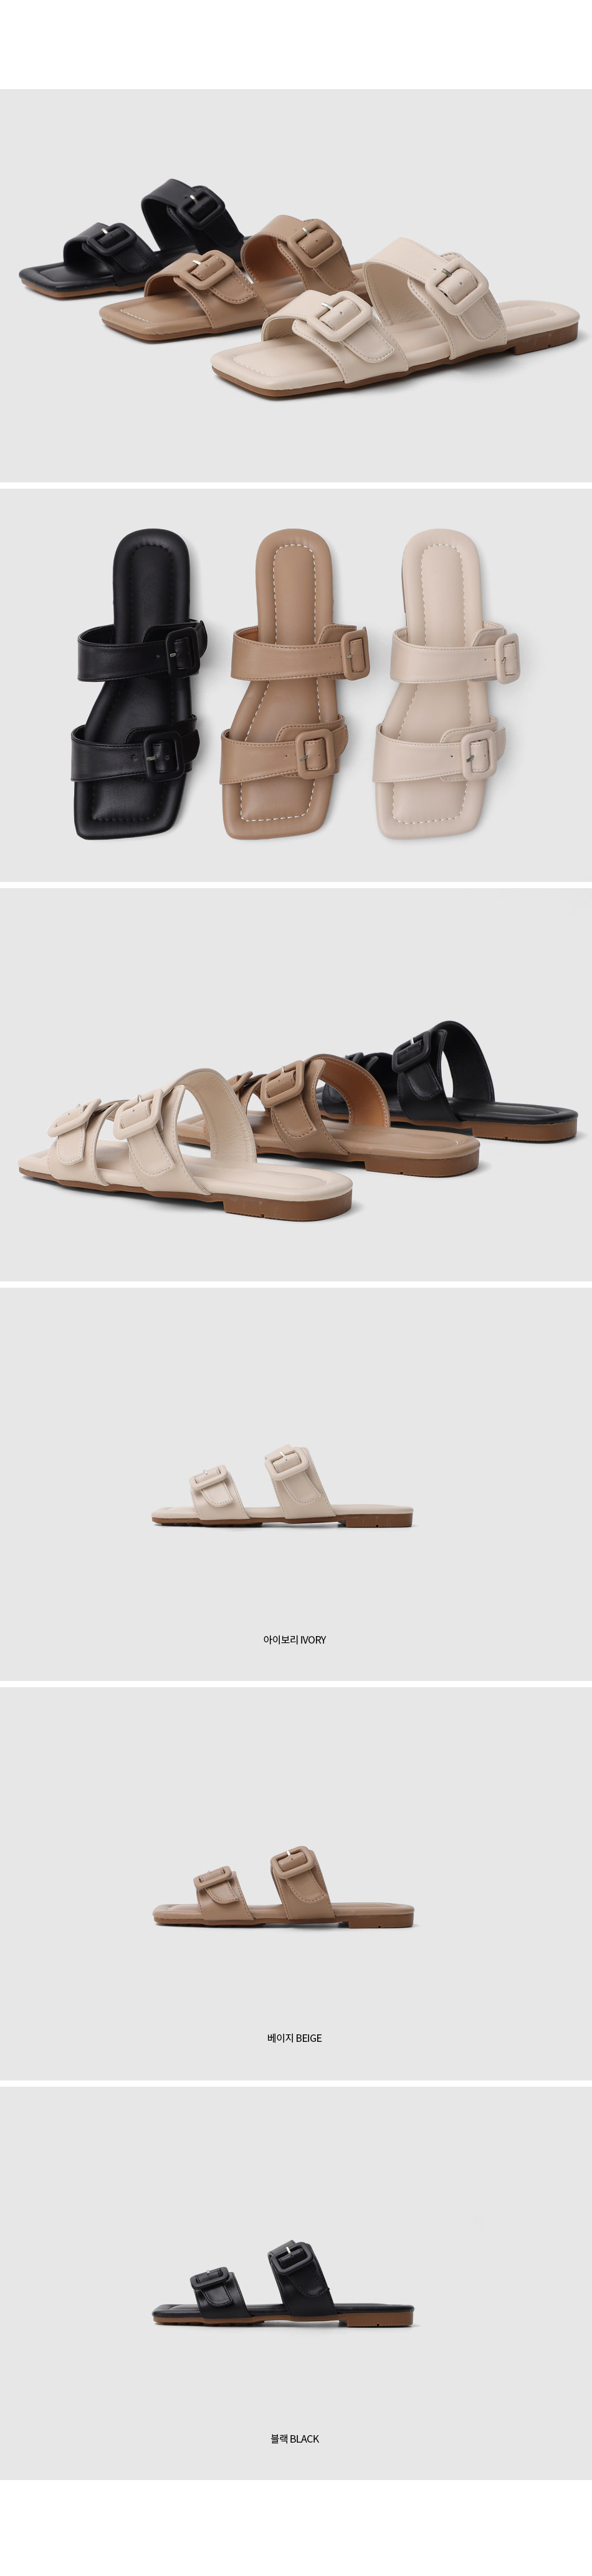 Double Buckle Strap Slippers 10973